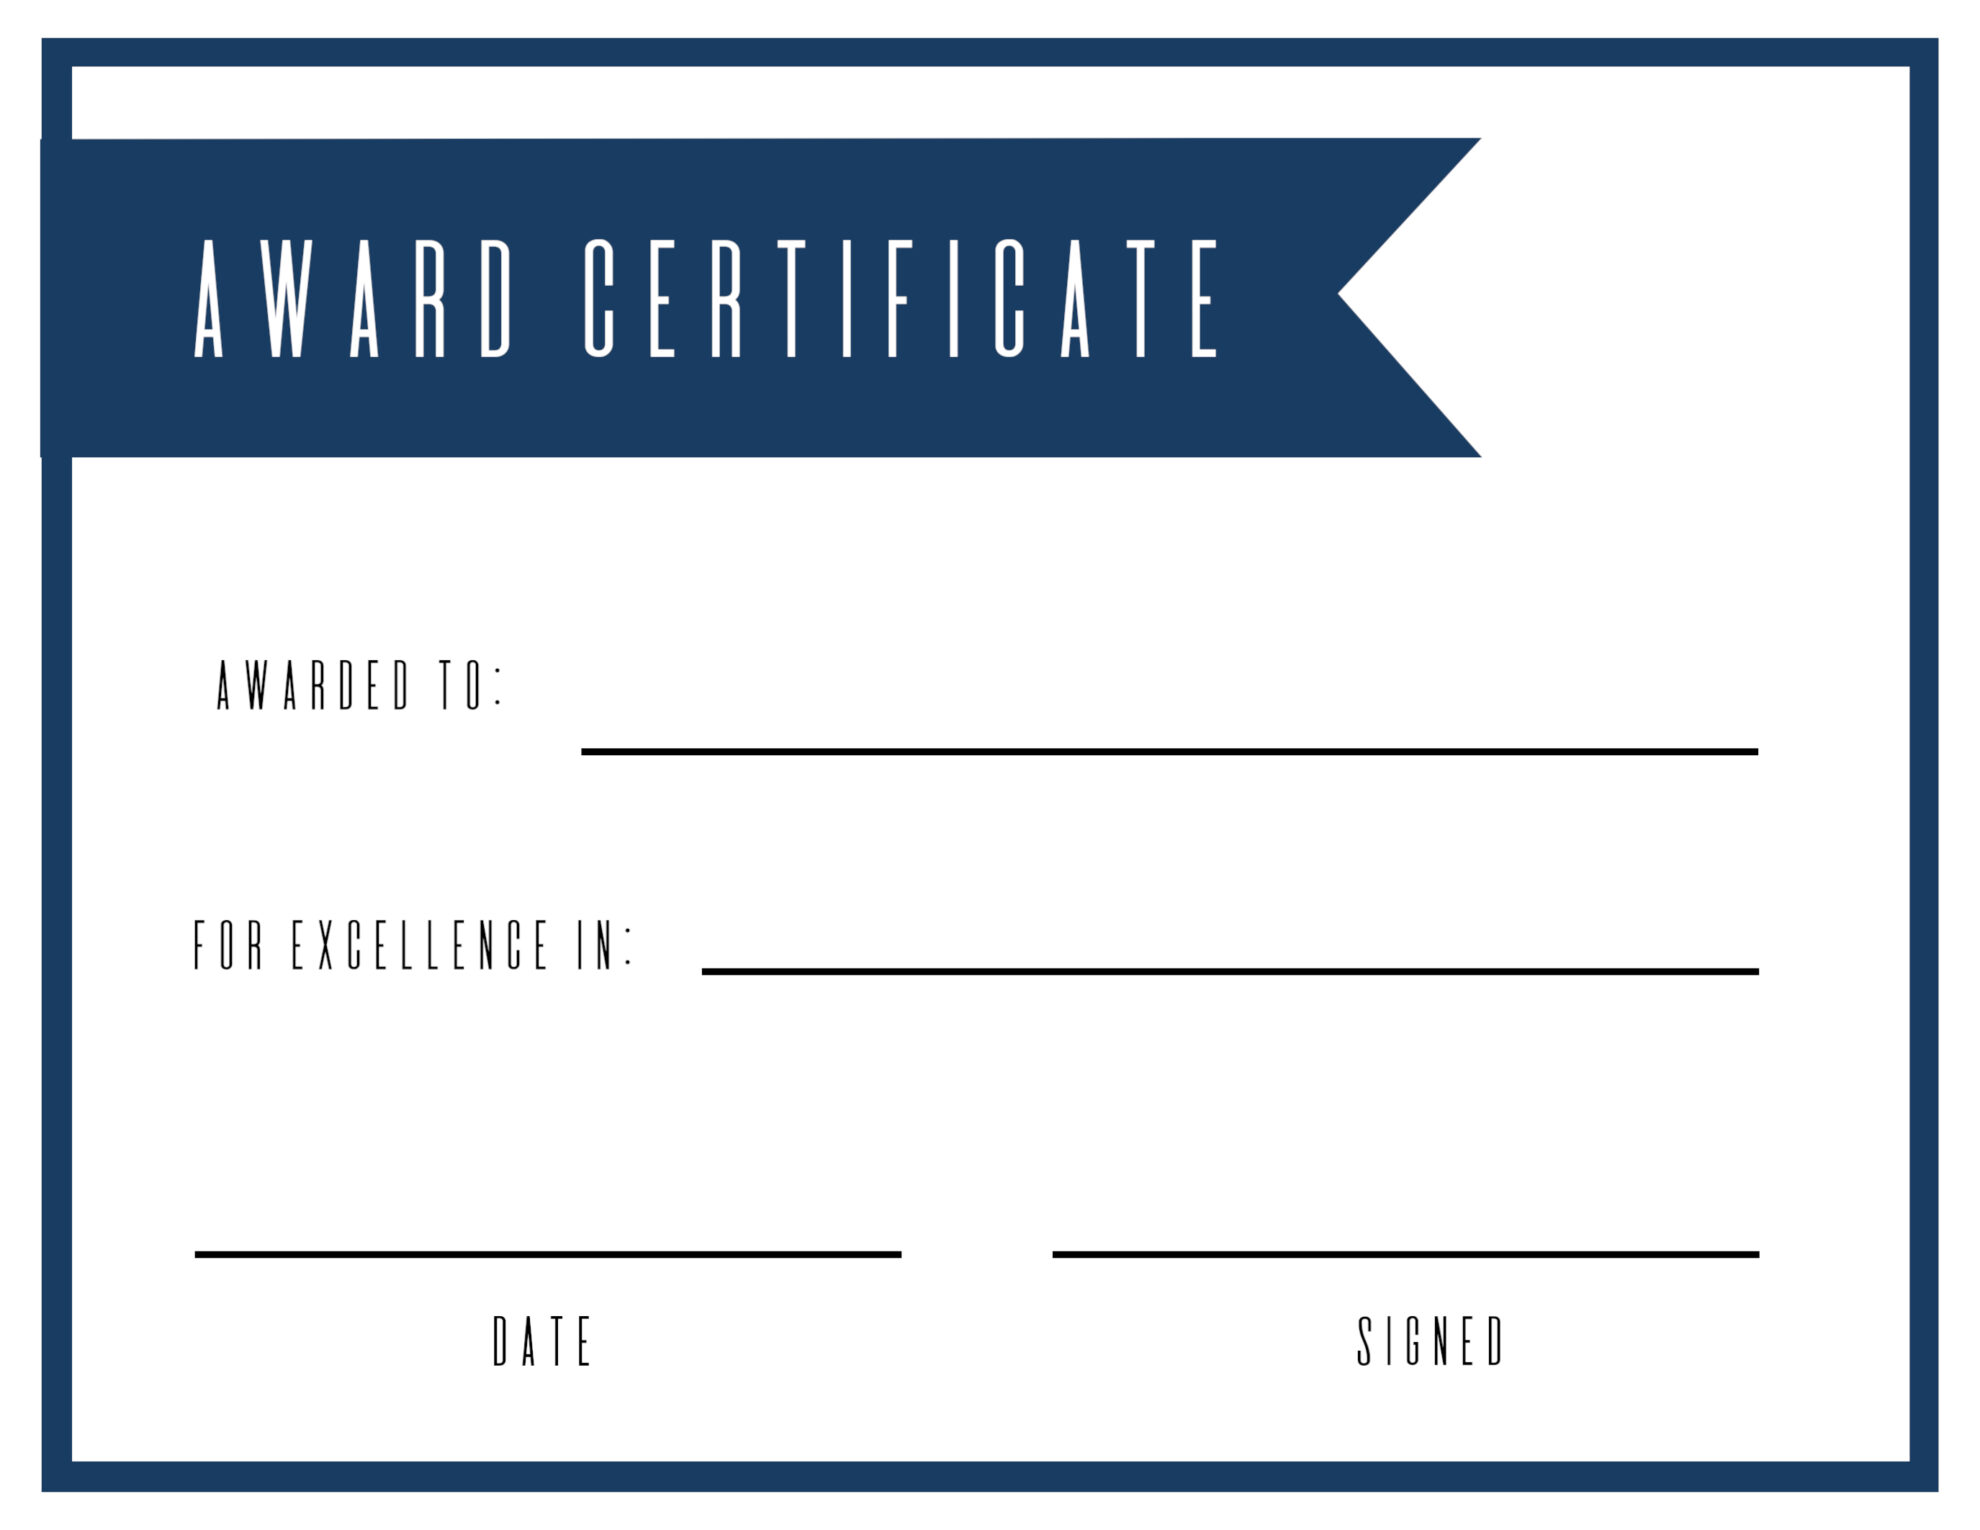 Free printable award certificate template paper trail design click the following links to print the free printable award certificate template alramifo Image collections